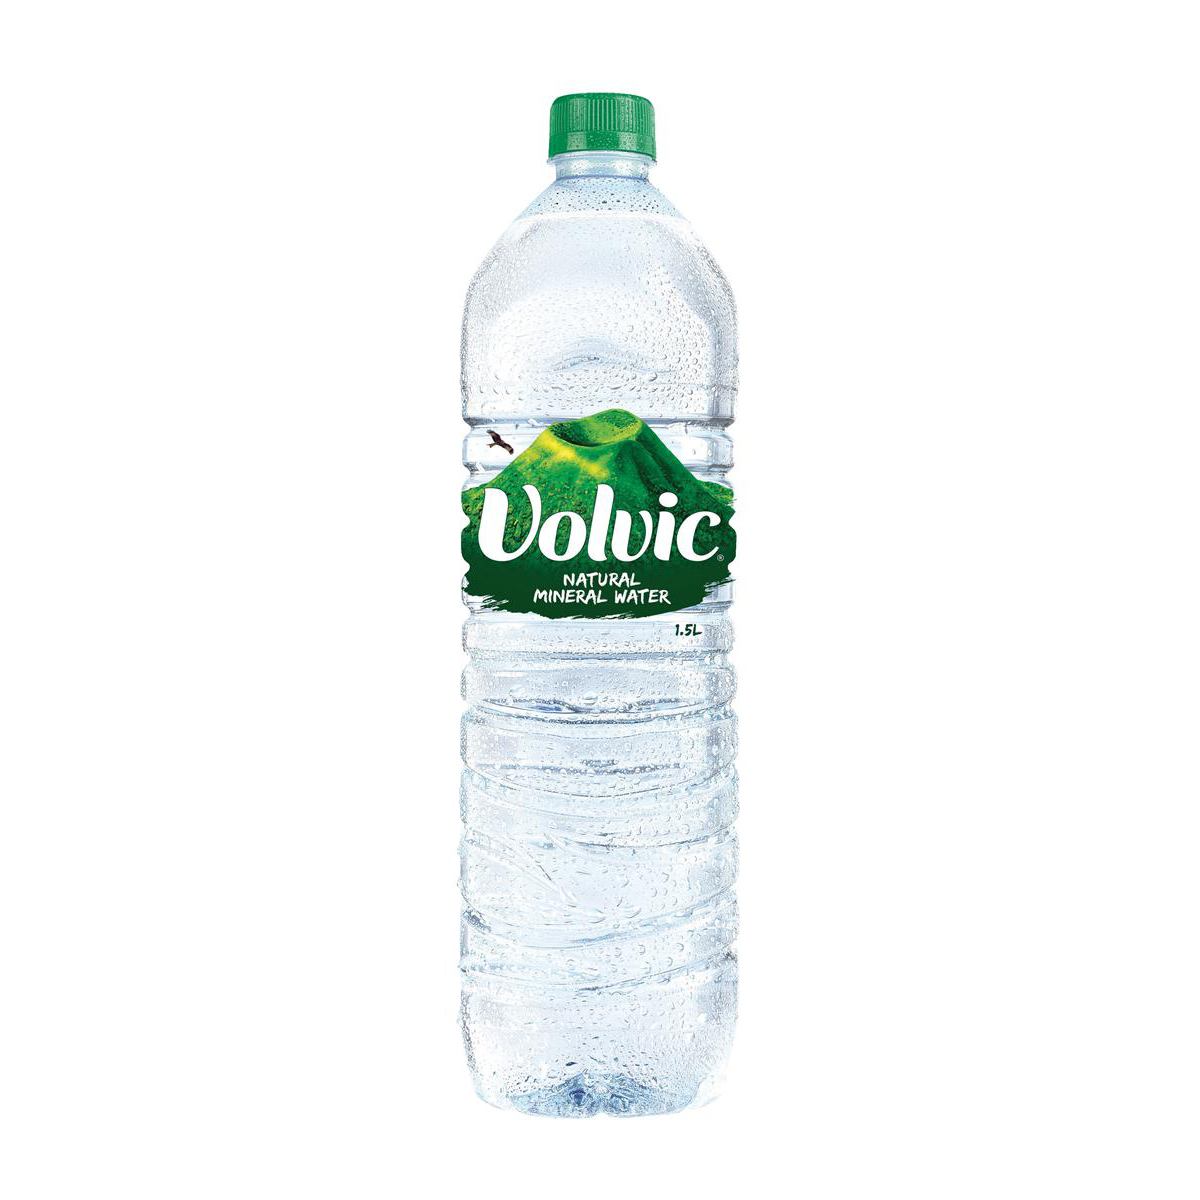 Volvic Natural Mineral Water Still Bottle Plastic 1.5 Litre Ref 8873 Pack 12